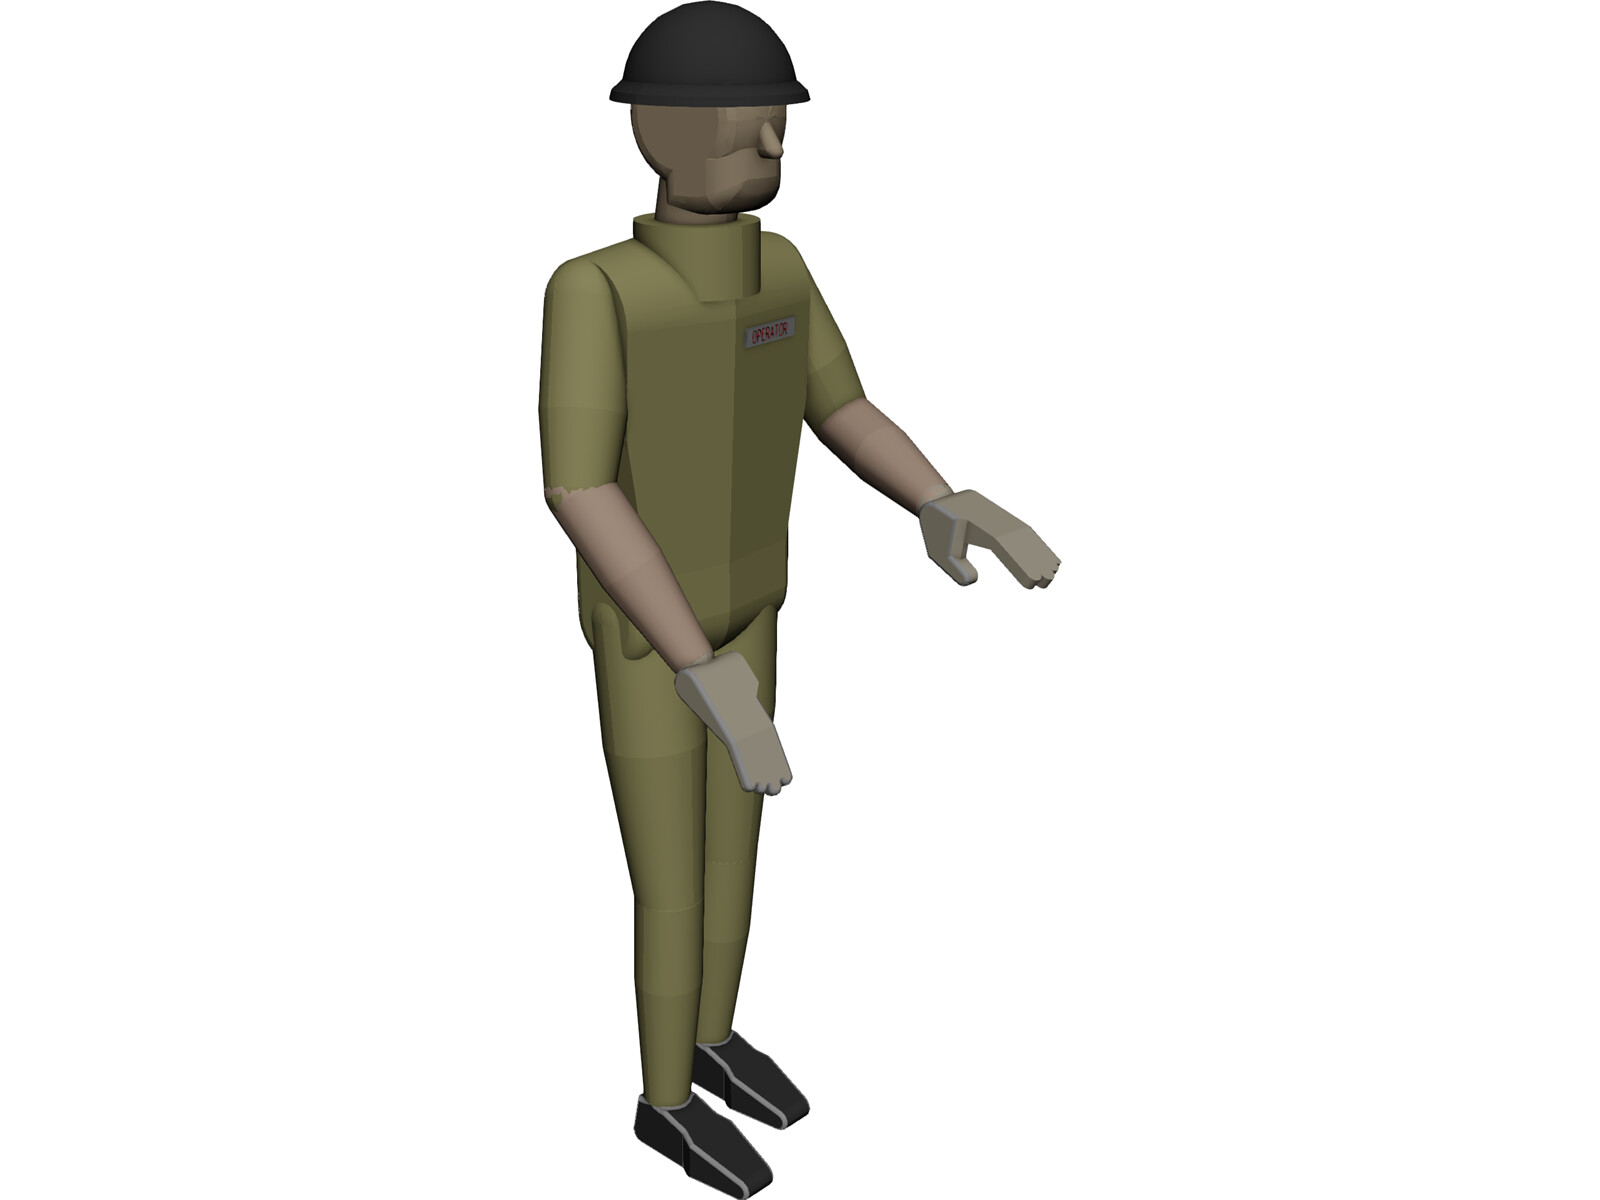 Human Operator 3d Cad Model 3d Cad Browser